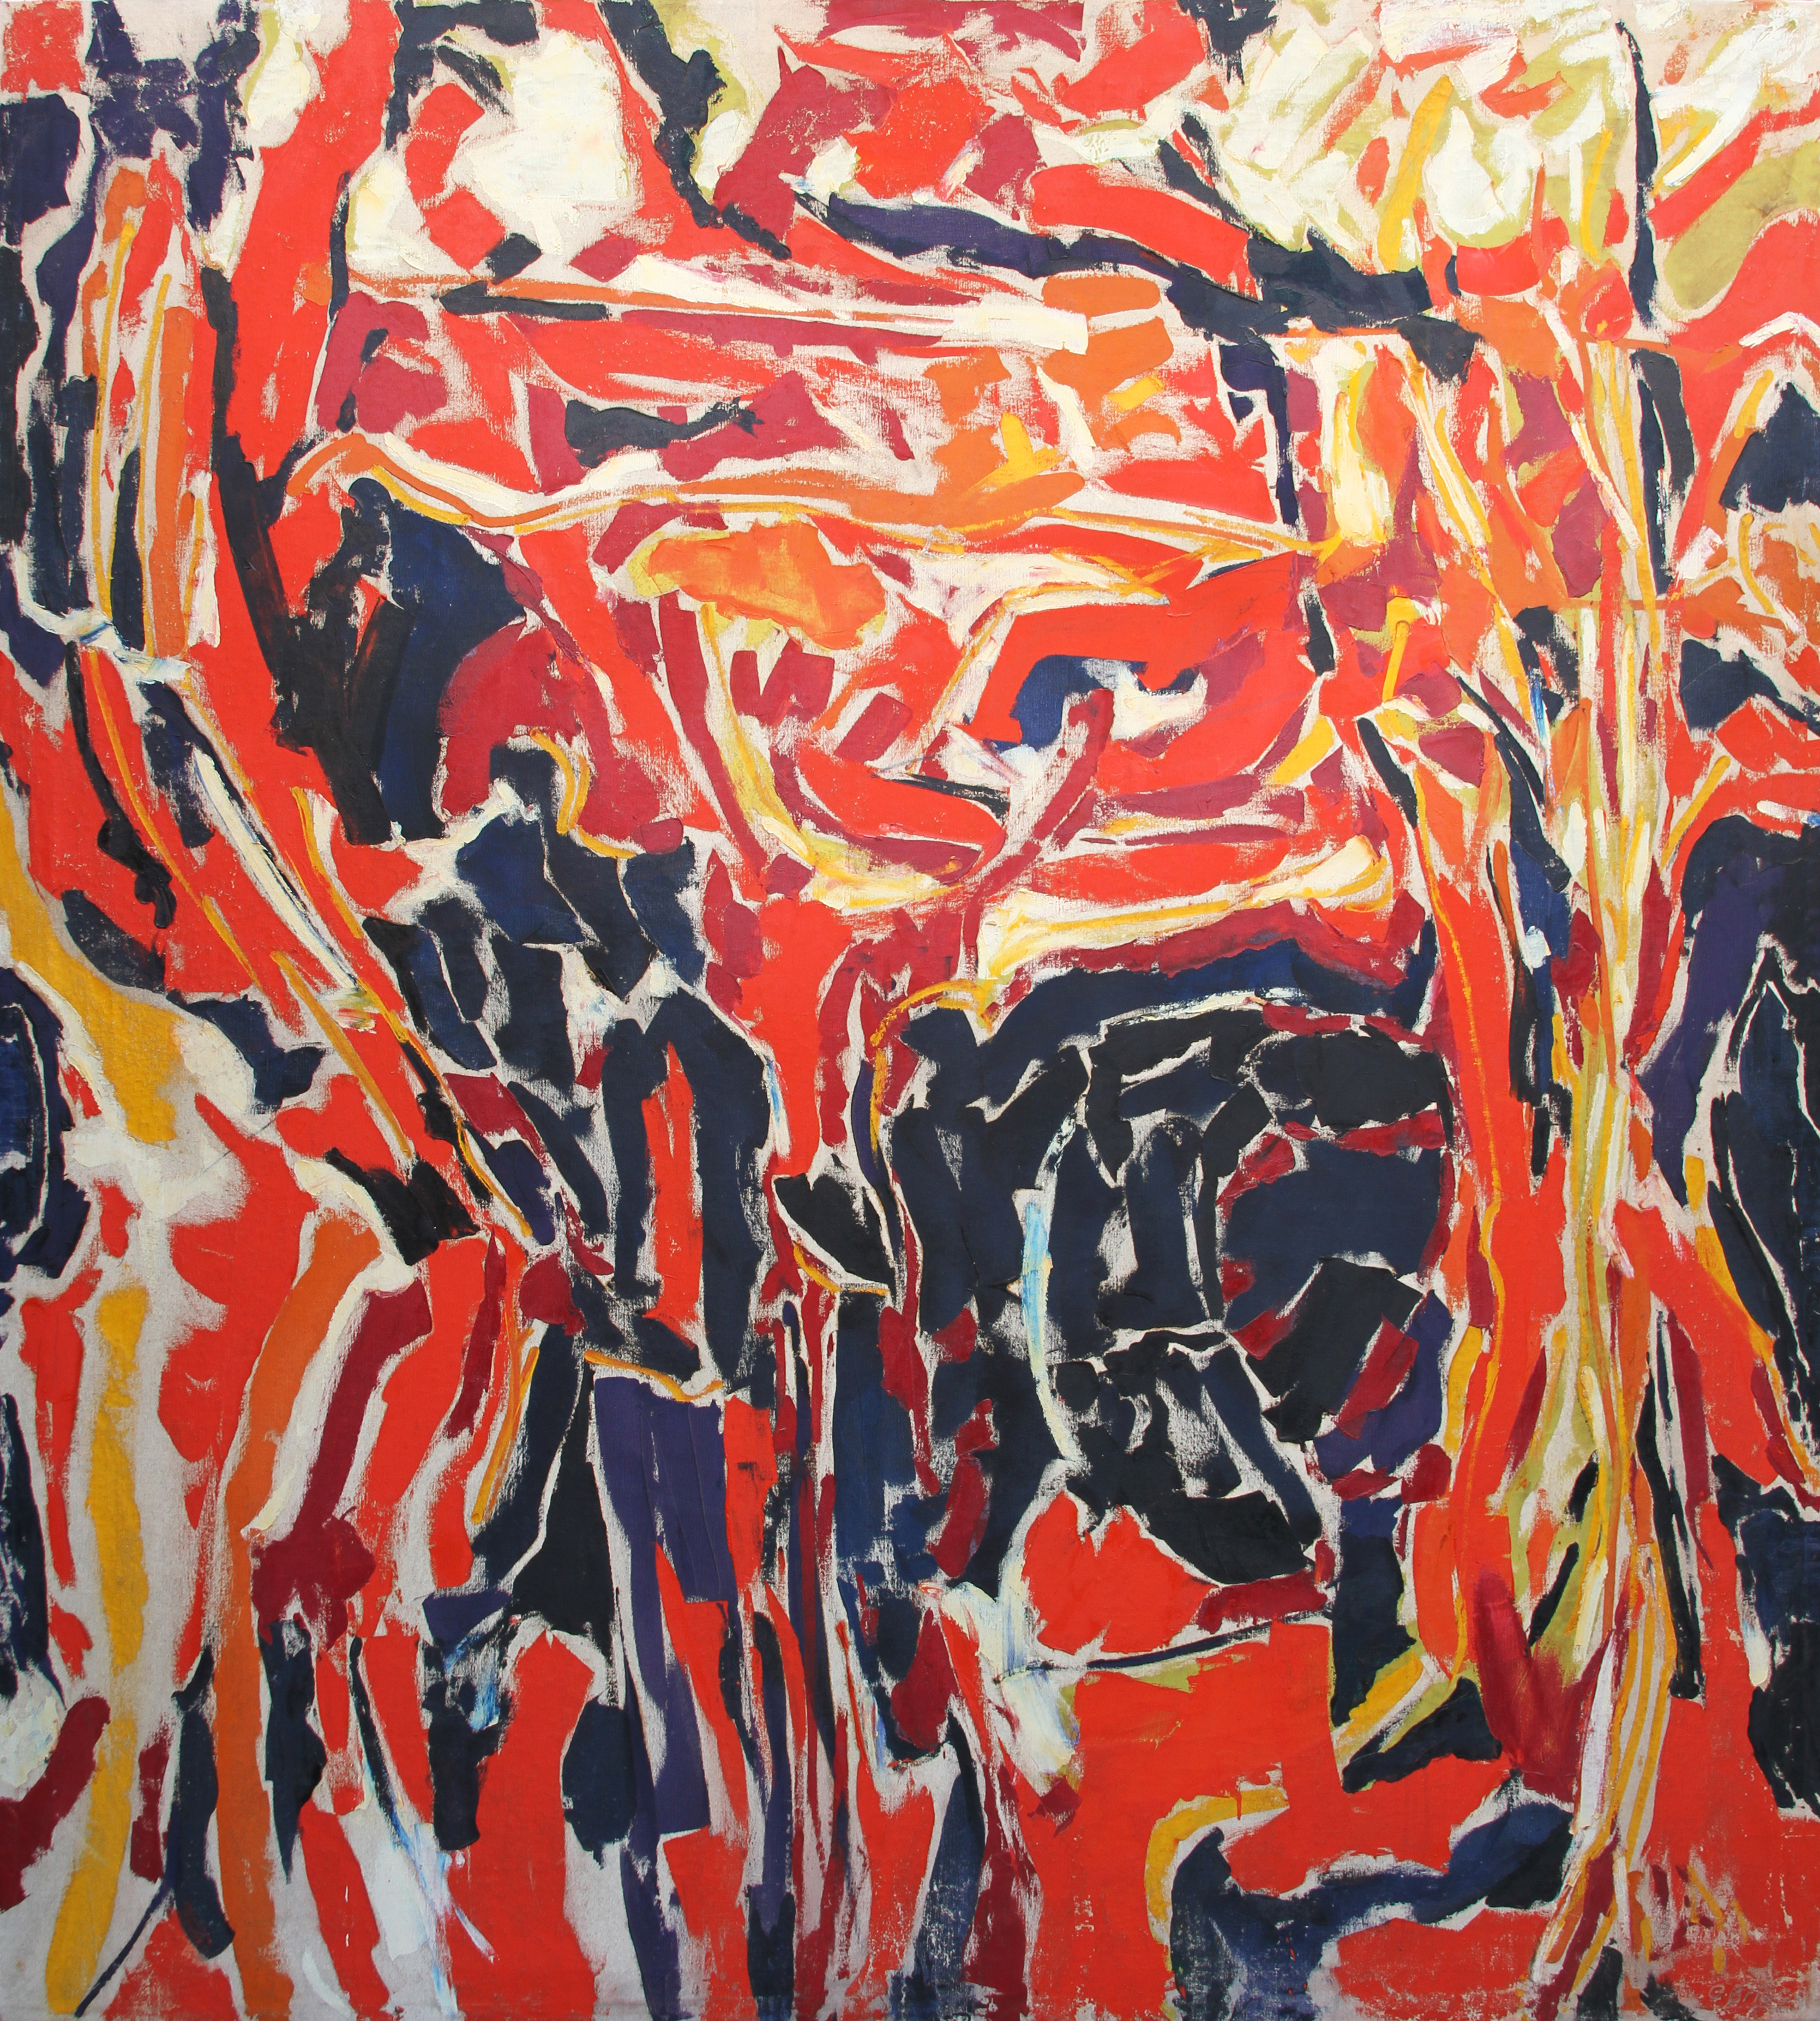 Ernest Briggs, 1959-June, Untitled, oil on canvas, 82 x 74